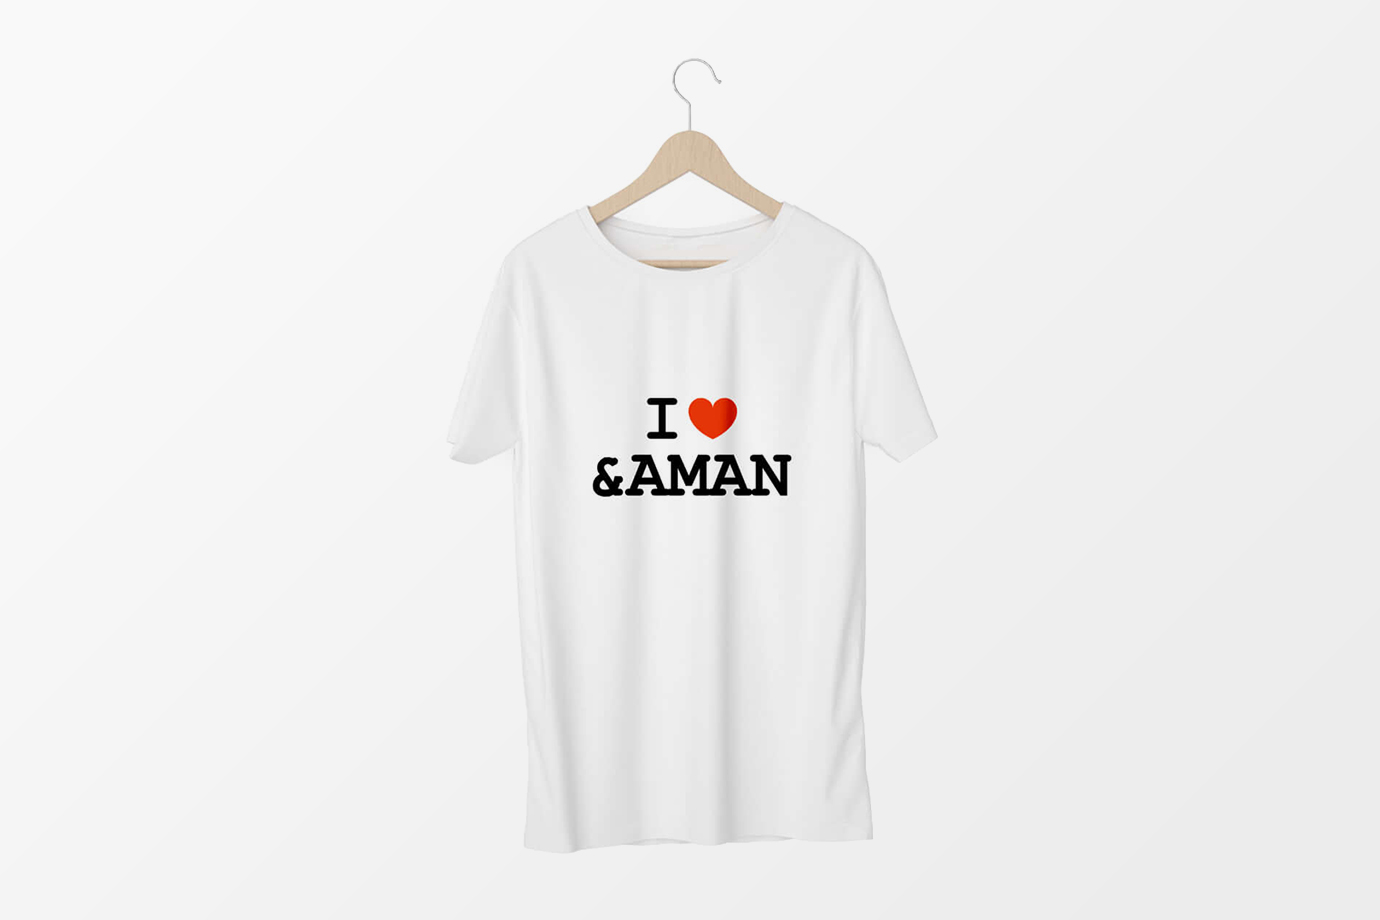 I love Andaman logo design by freelance graphic designer Sajid Sulaiman